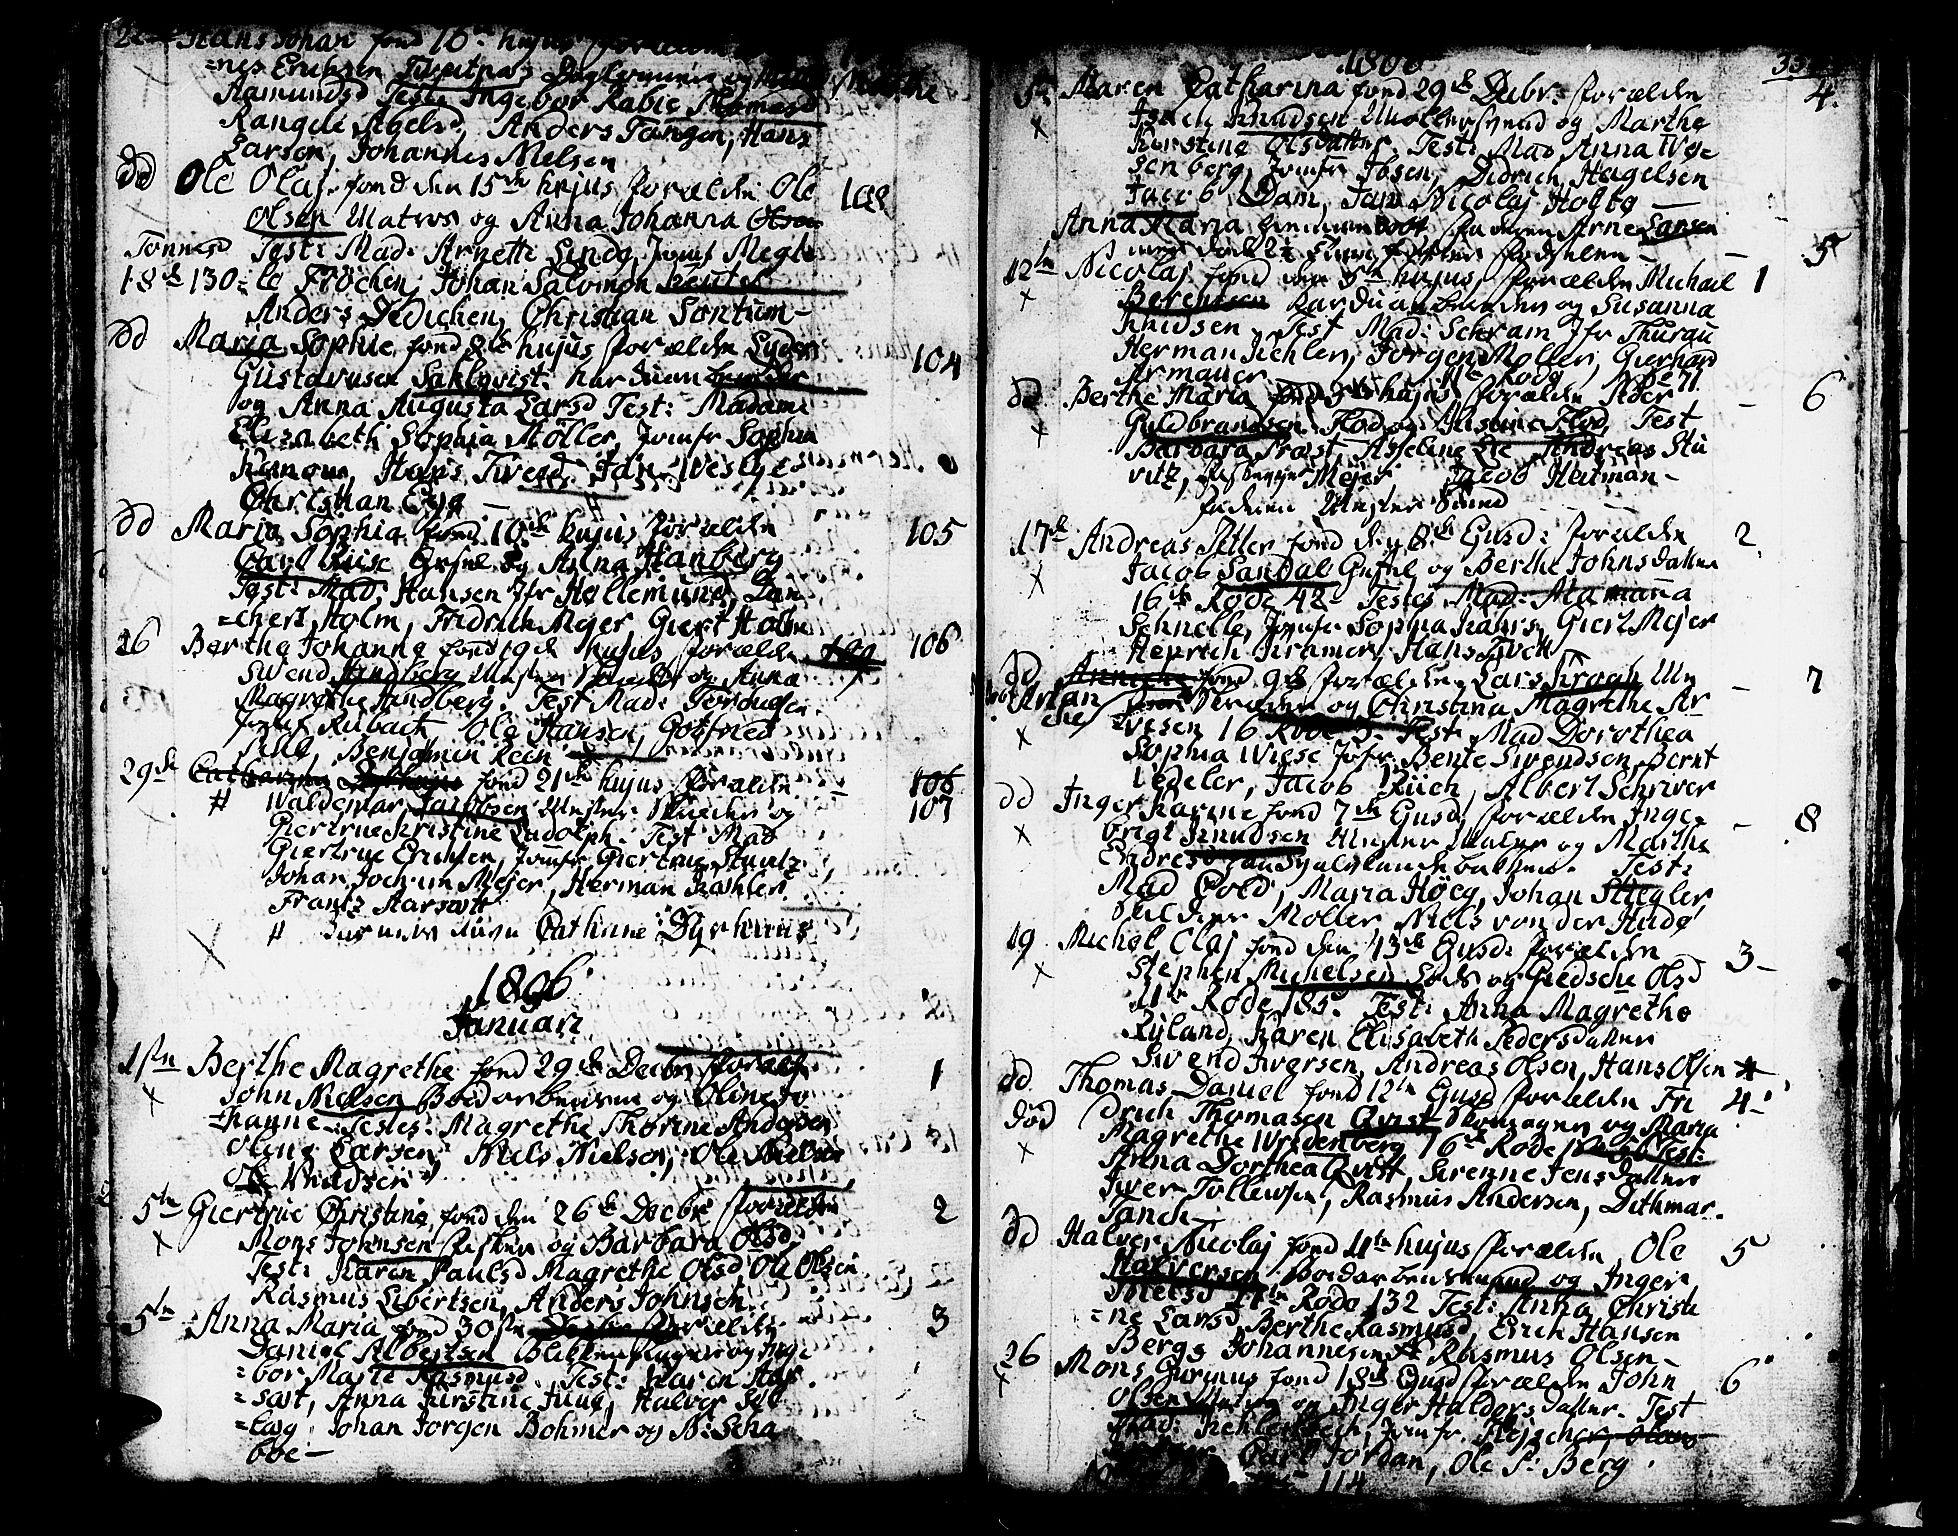 SAB, Domkirken sokneprestembete, H/Haa/L0004: Parish register (official) no. A 4, 1763-1820, p. 353-354